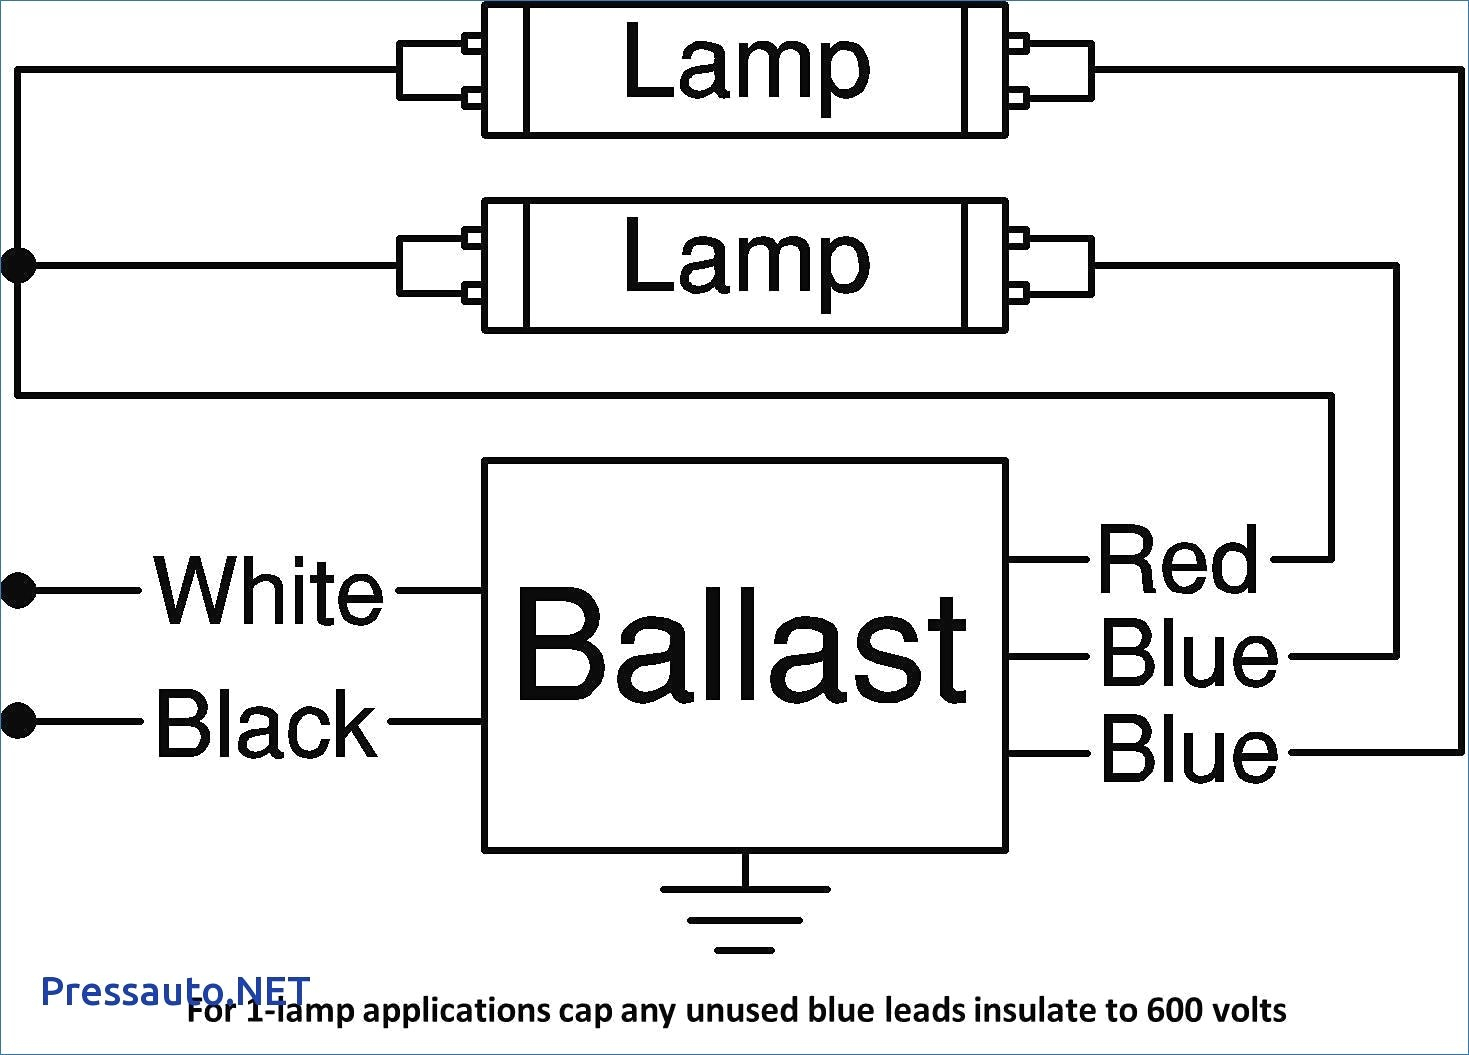 2 Lamp Electronic Ballast Wiring Diagram Books Of Infinity 36670 Collection Rh Wholefoodsonabudget Com